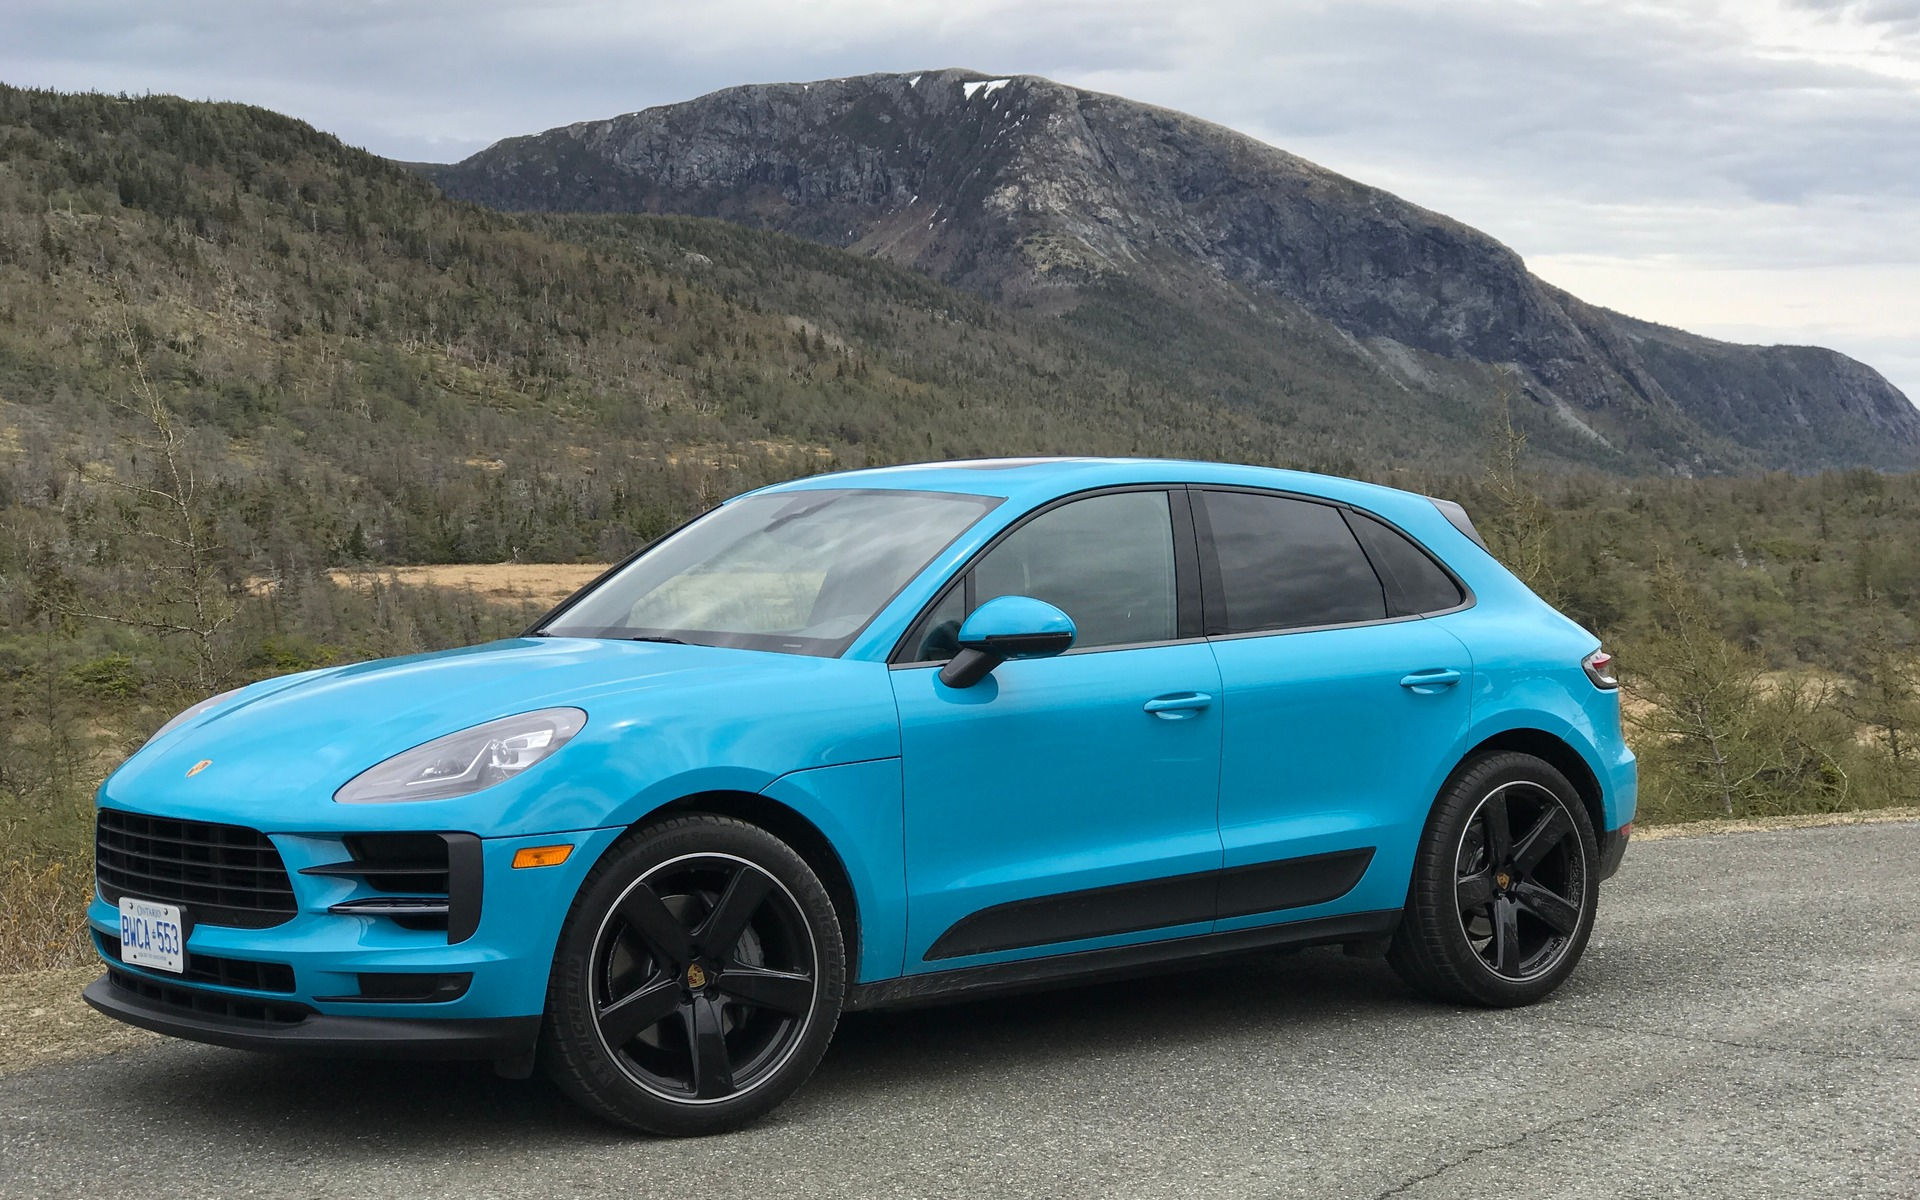 2019 Porsche Macan GTS, Turbo, Release Date, And Price >> 2019 Porsche Macan More Accomplished Than Rivals The Car Guide